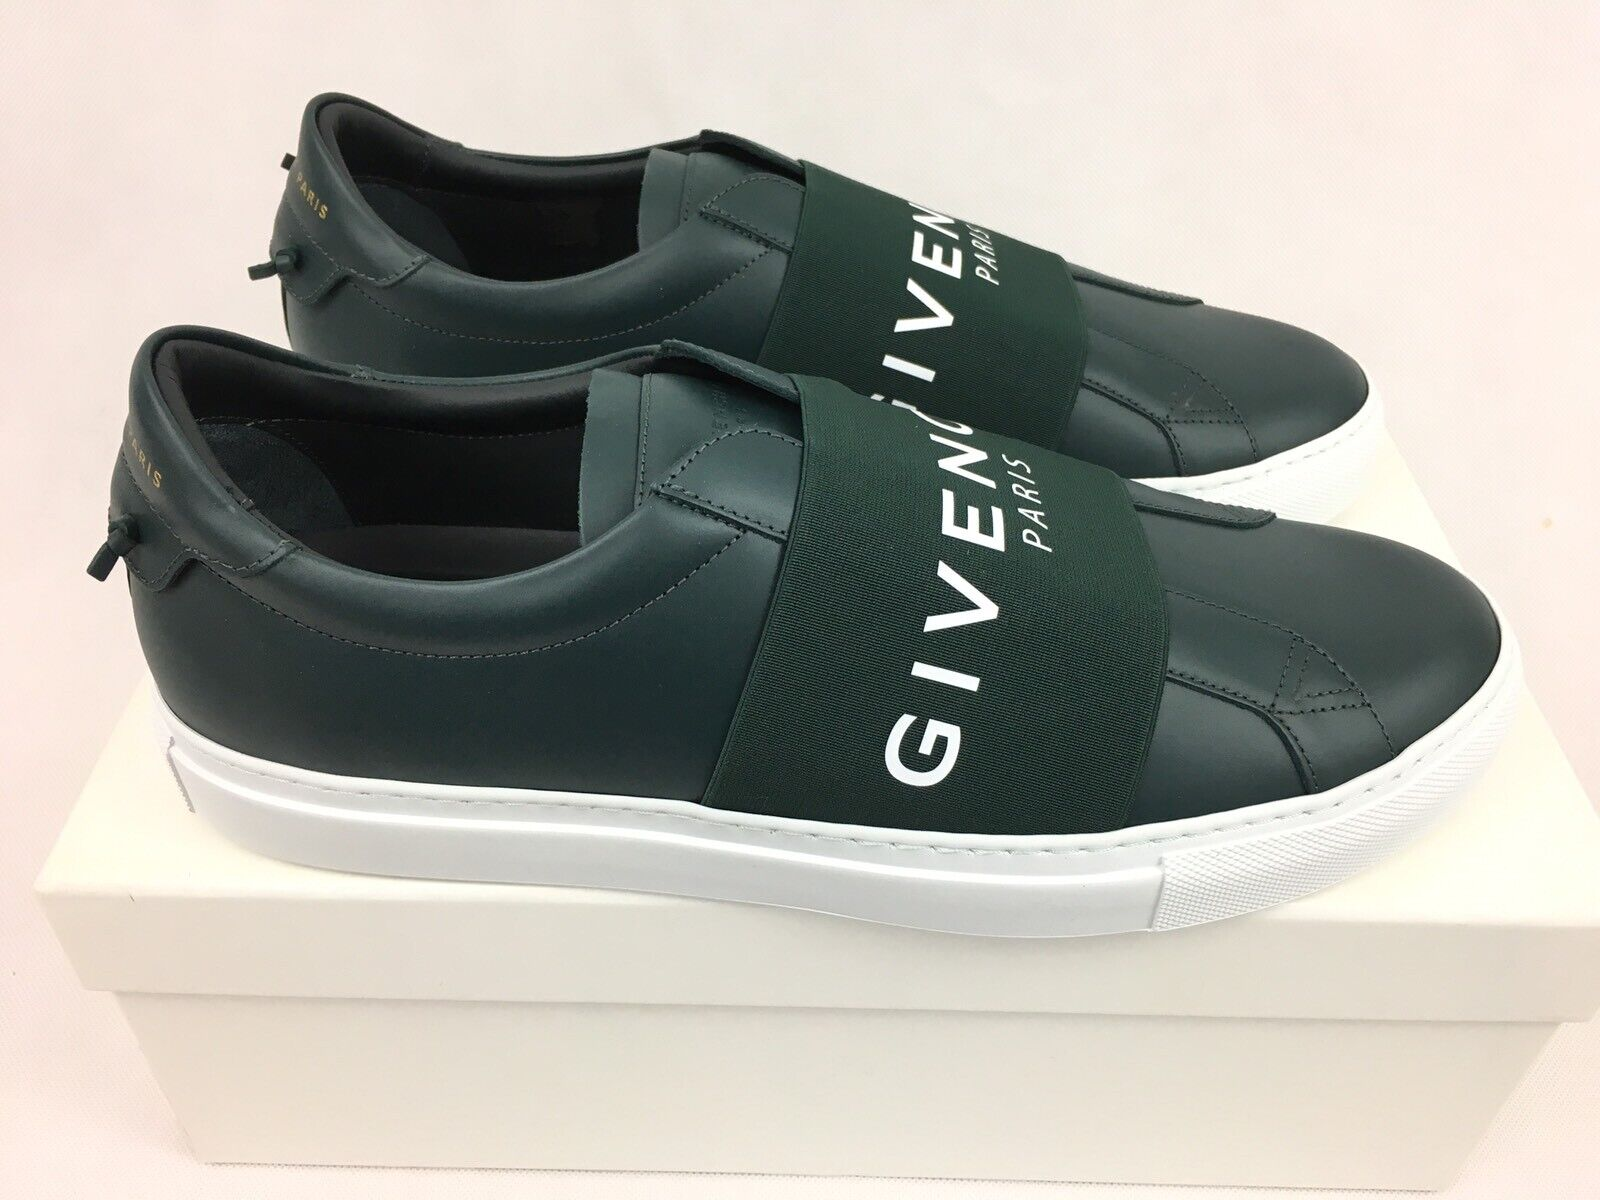 Givenchy Paris Urban Knots Street Sneakers Trainers - Oil bluee UK9 EU43  New